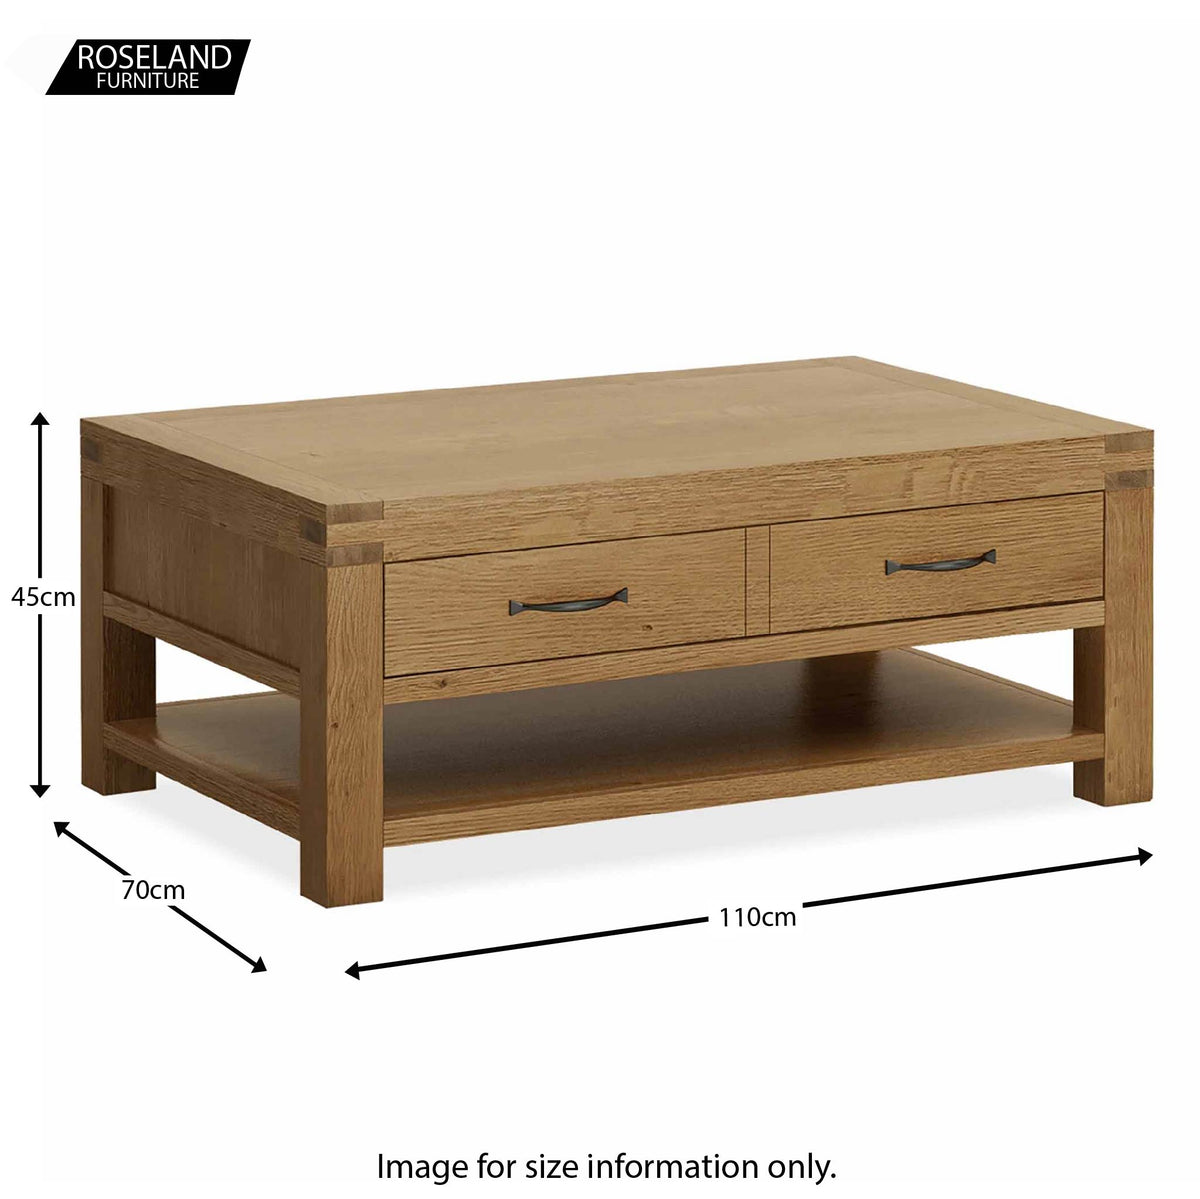 Abbey Grande Oak Coffee Table with Storage Drawer - Size guide